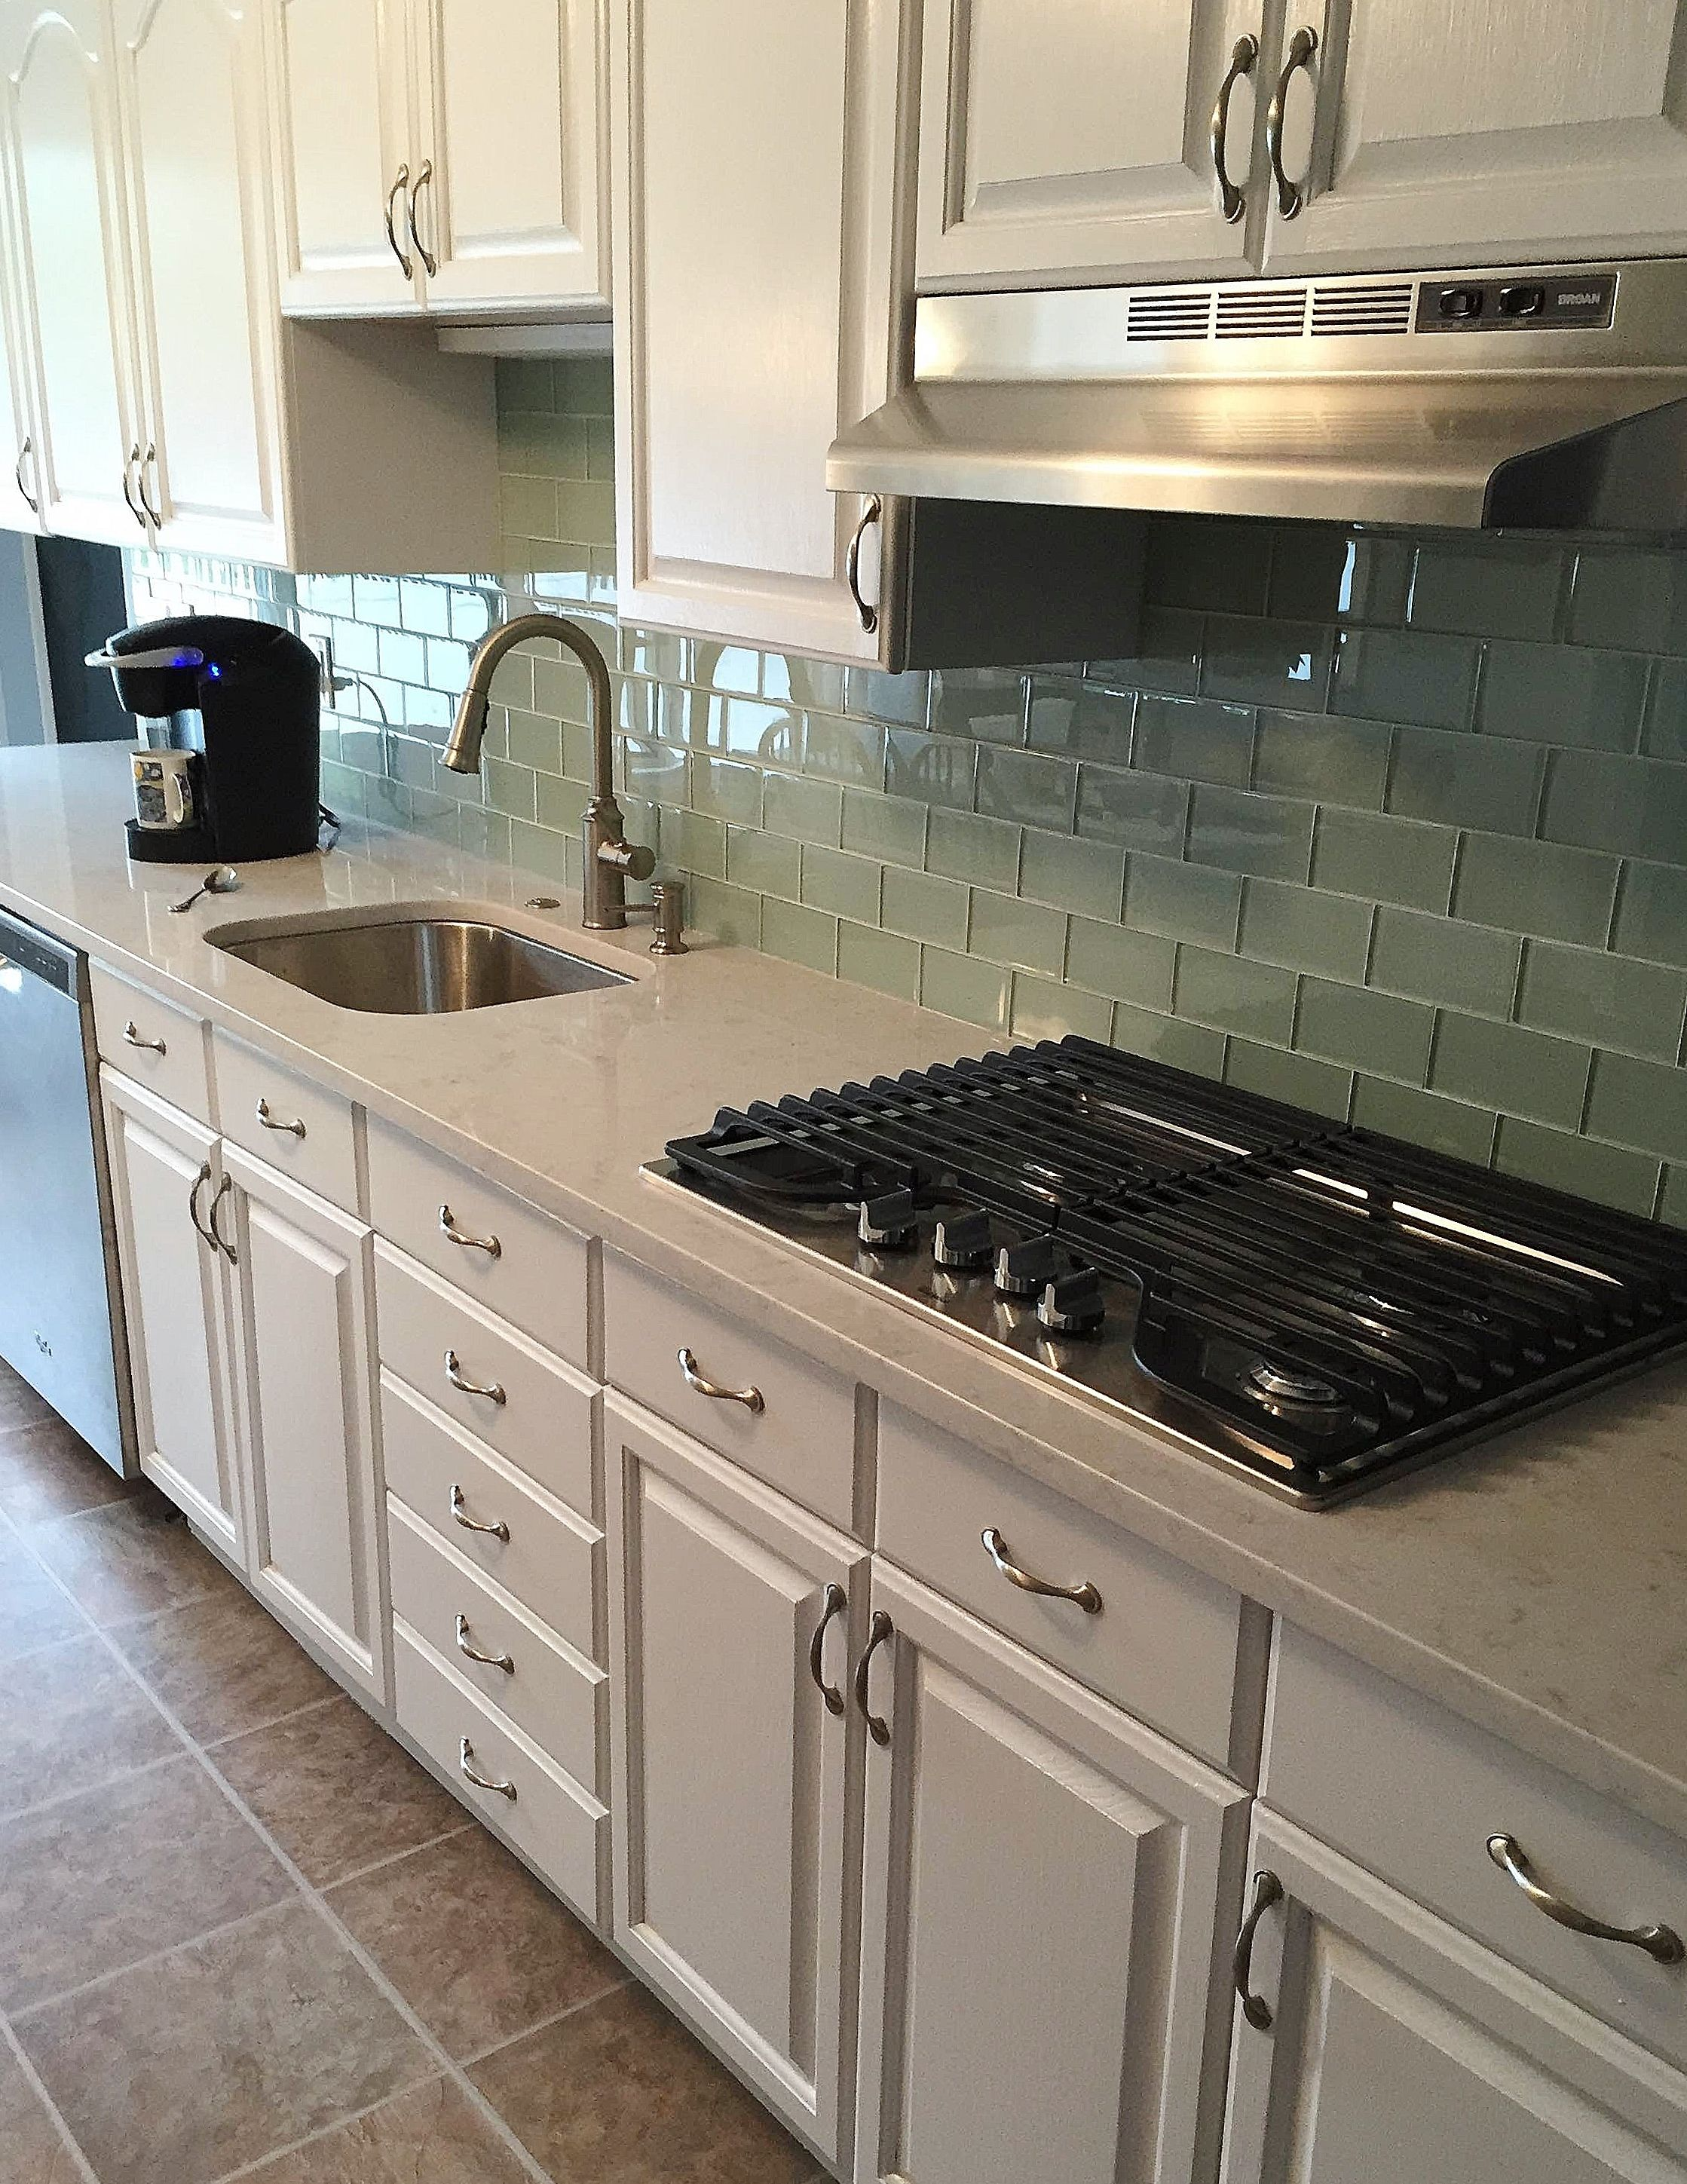 silestone lagoon quartz countertops with a soft blue glass tile